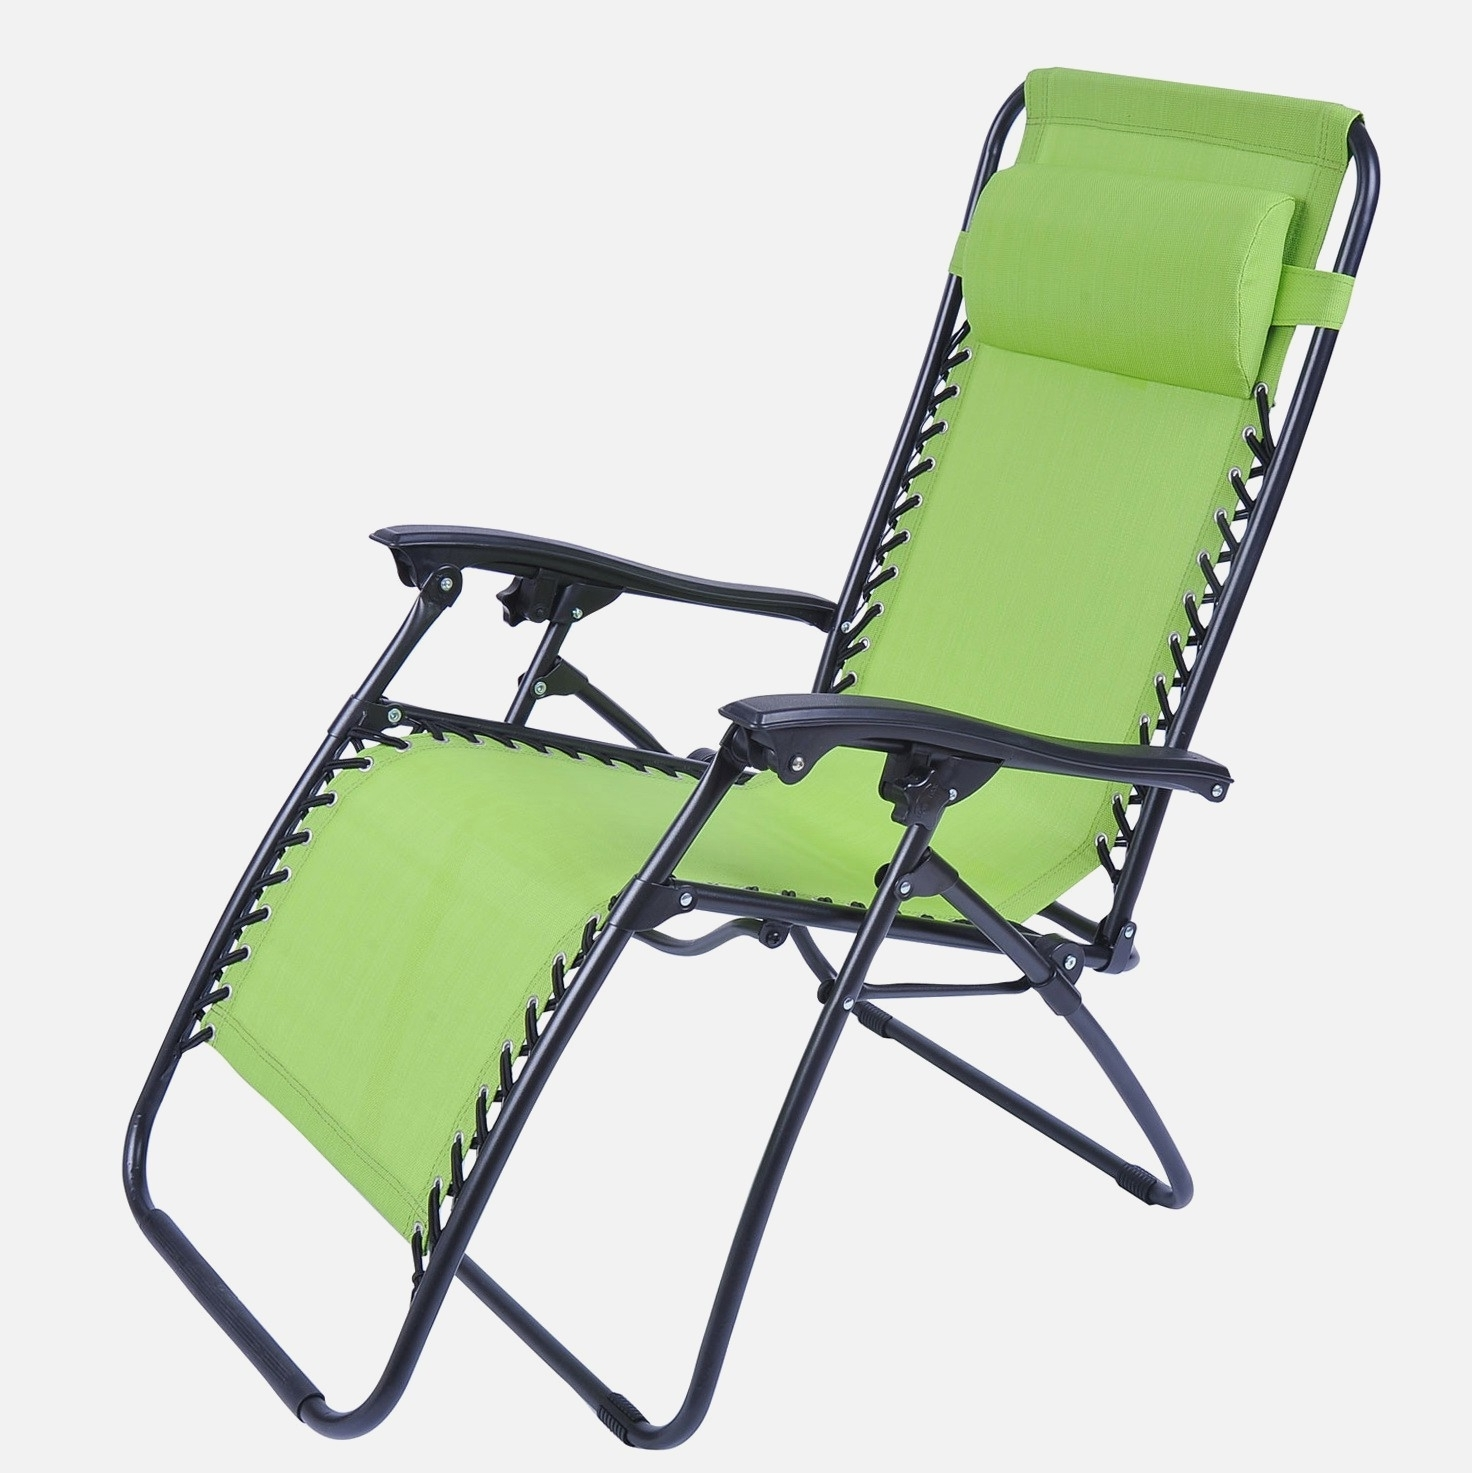 Latest Jelly Chaise Lounge Chairs Within Outdoor : Cheap Lawn Chairs Plastic Lounge Chairs Indoor Wooden (View 10 of 15)